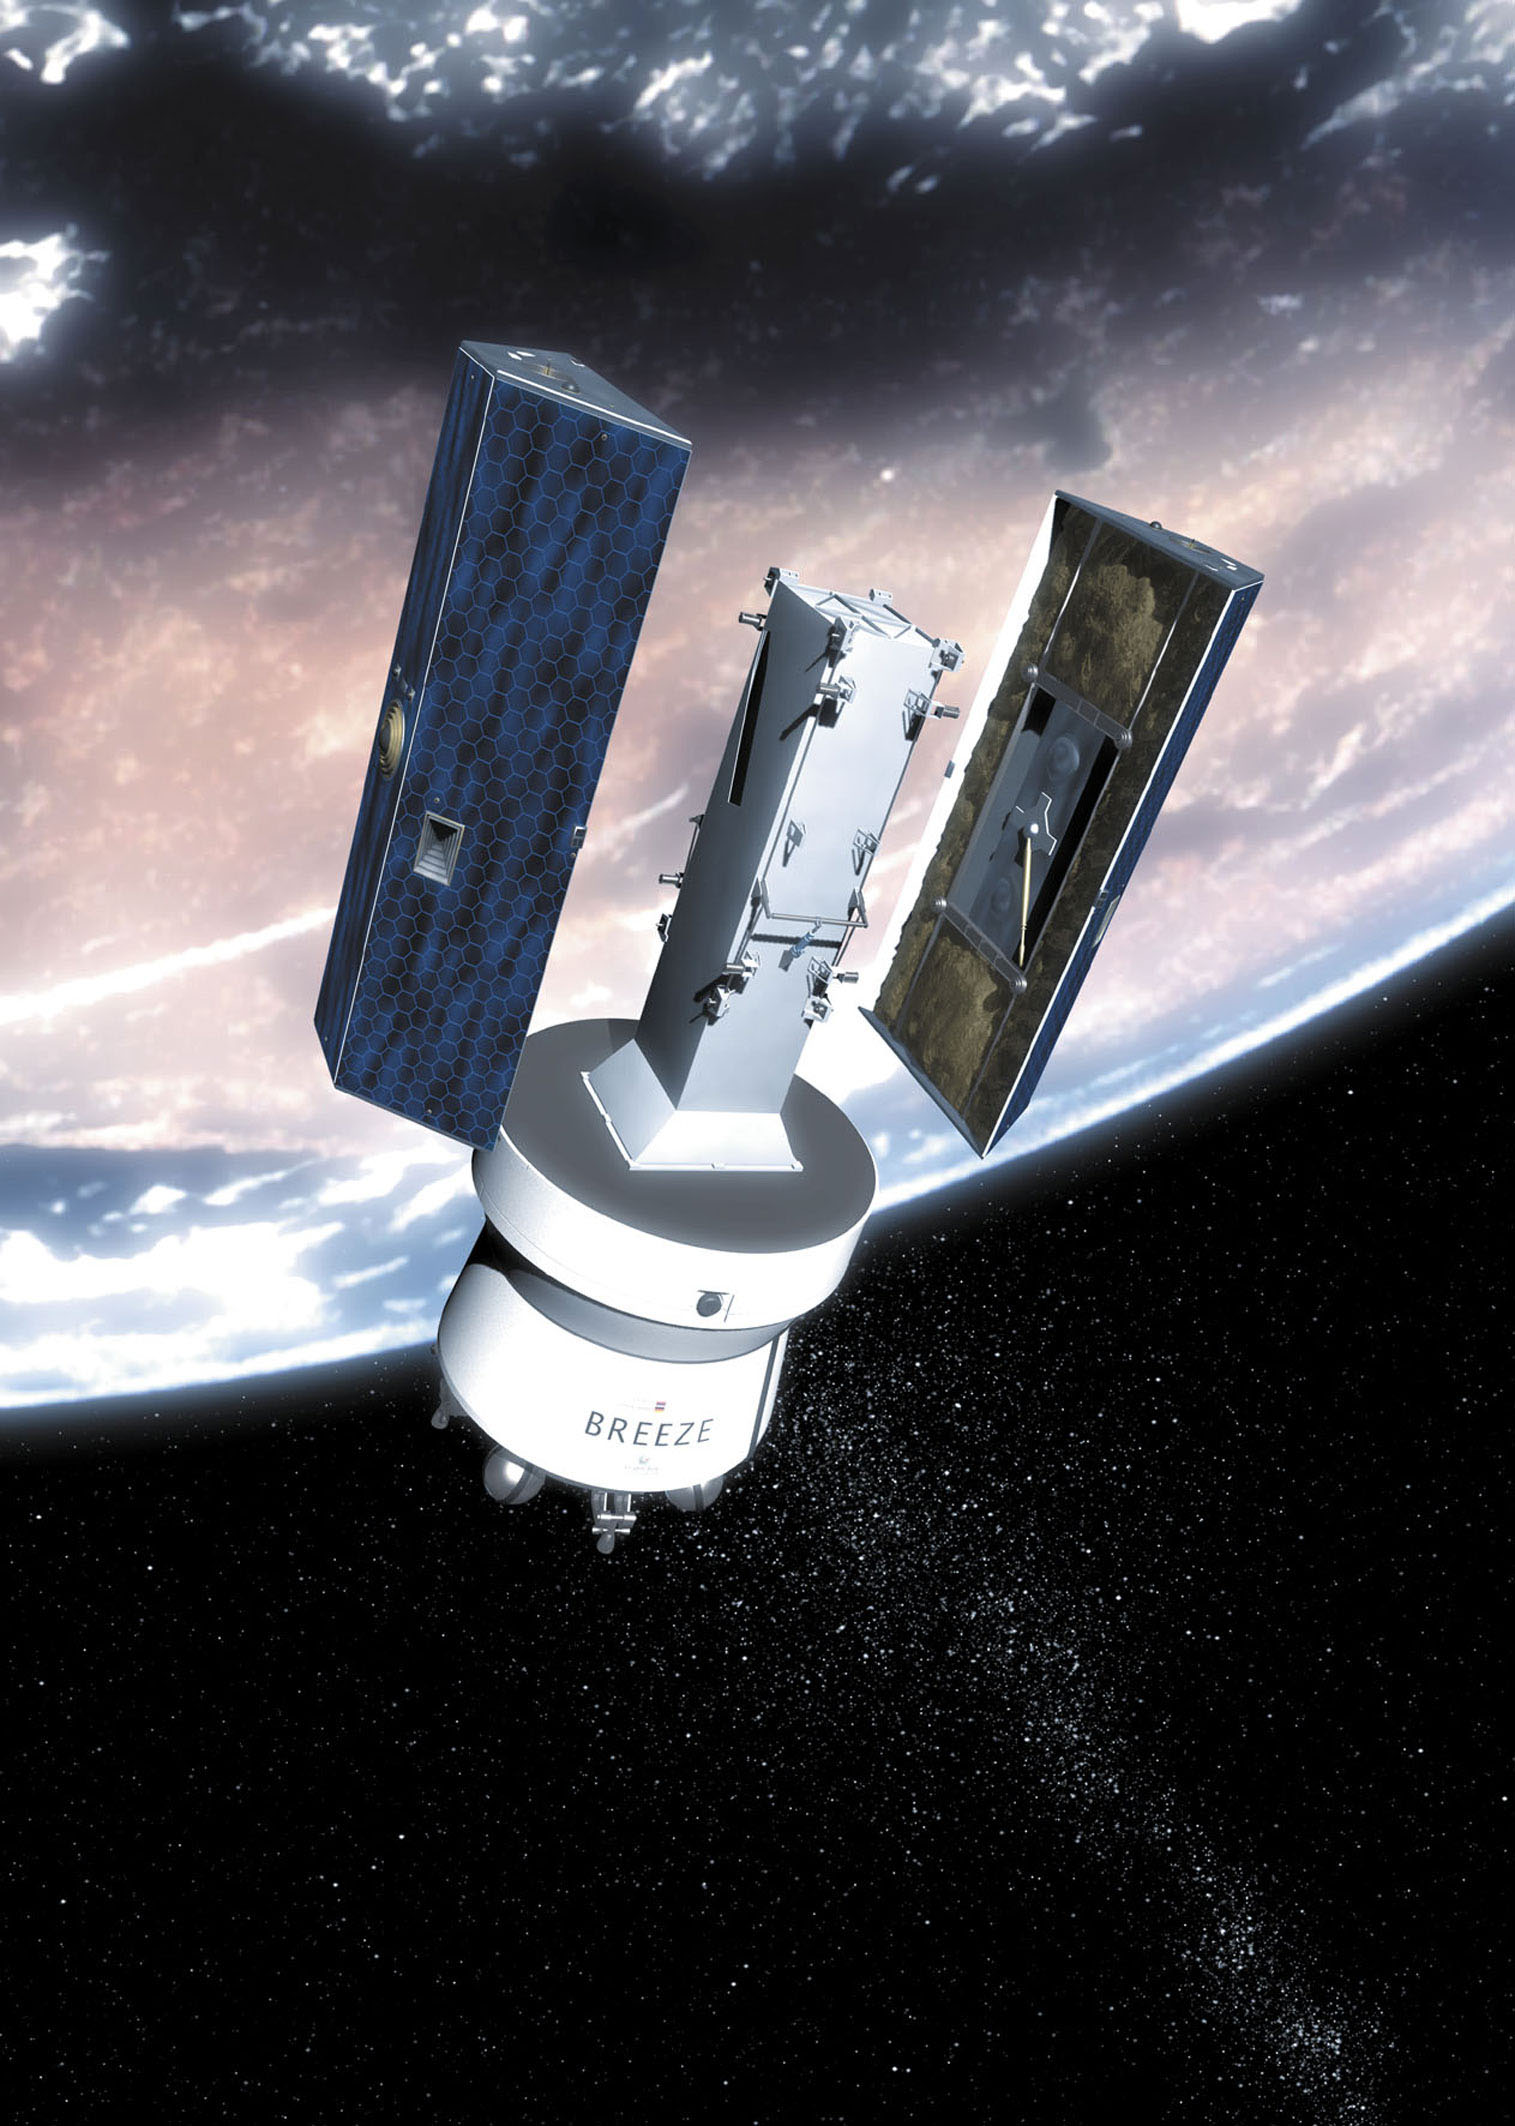 Twin GRACE spacecraft being deployed from Breeze